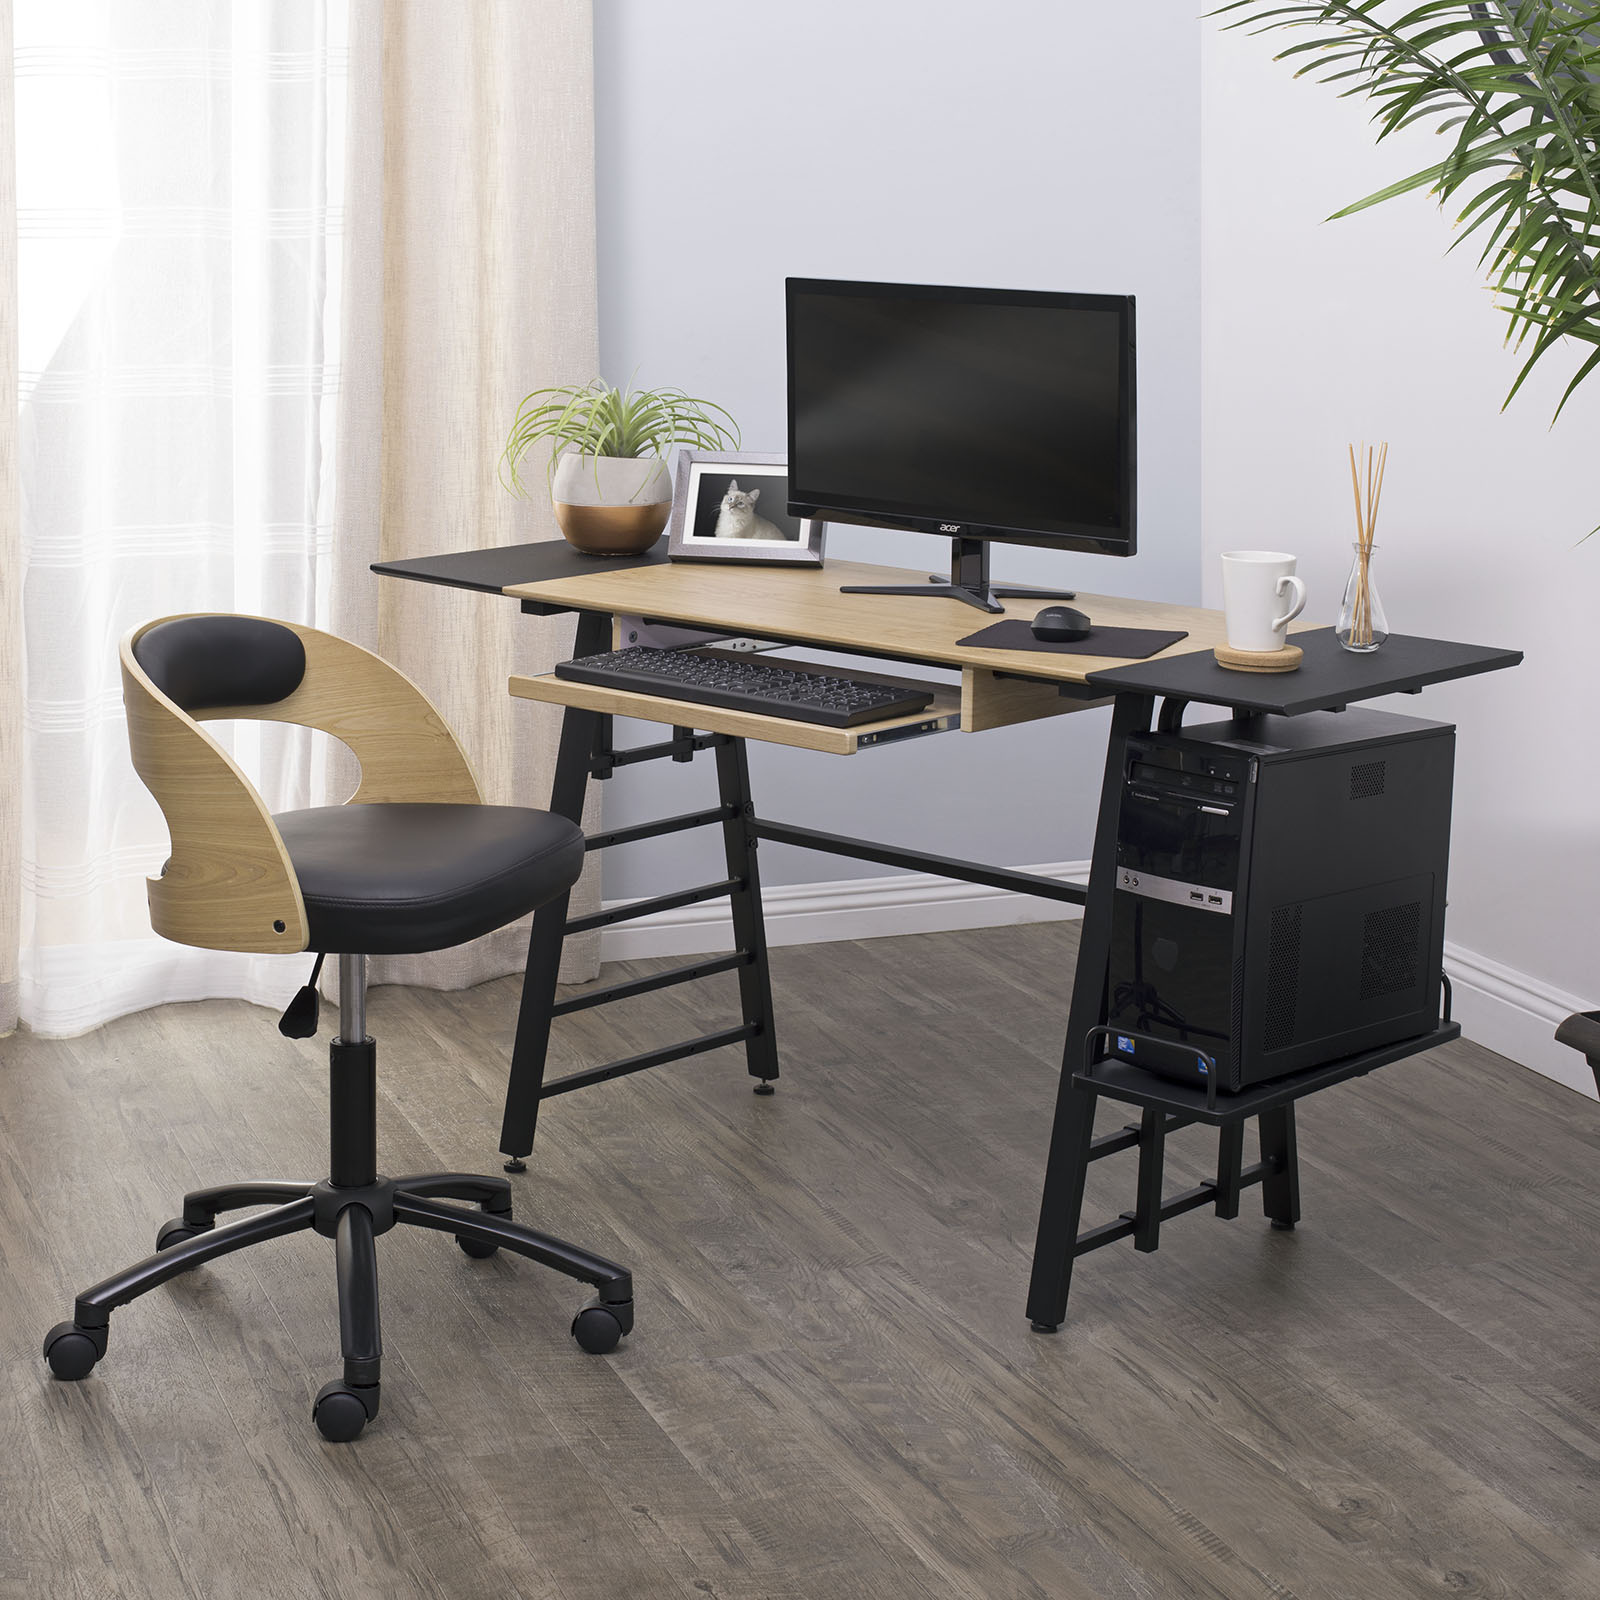 Ashwood Convertible Desk With Height Adjustable Shelves In Black Ashwood Item 51240 Studio Designs